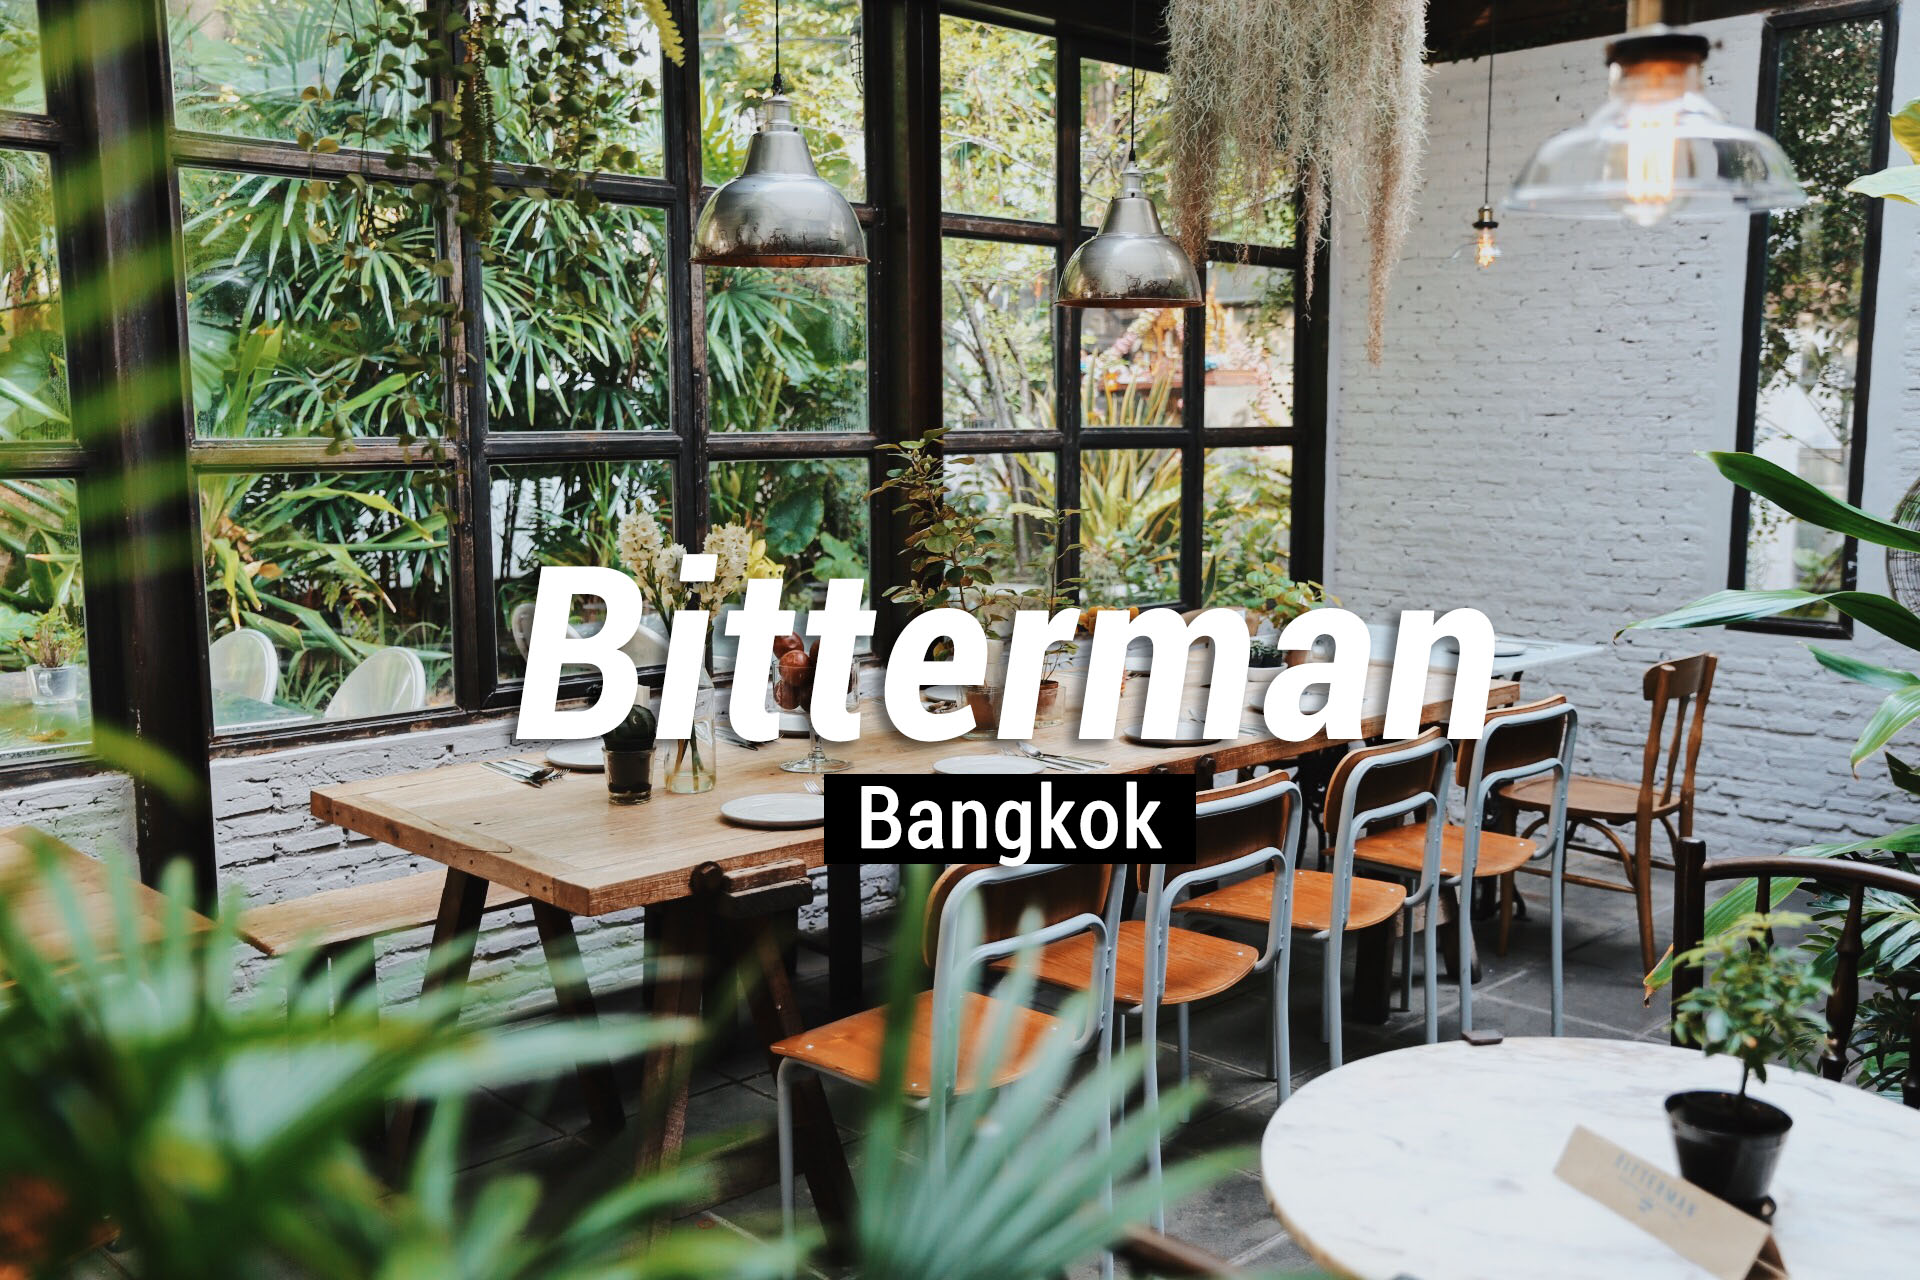 The Bitterman Bangkok